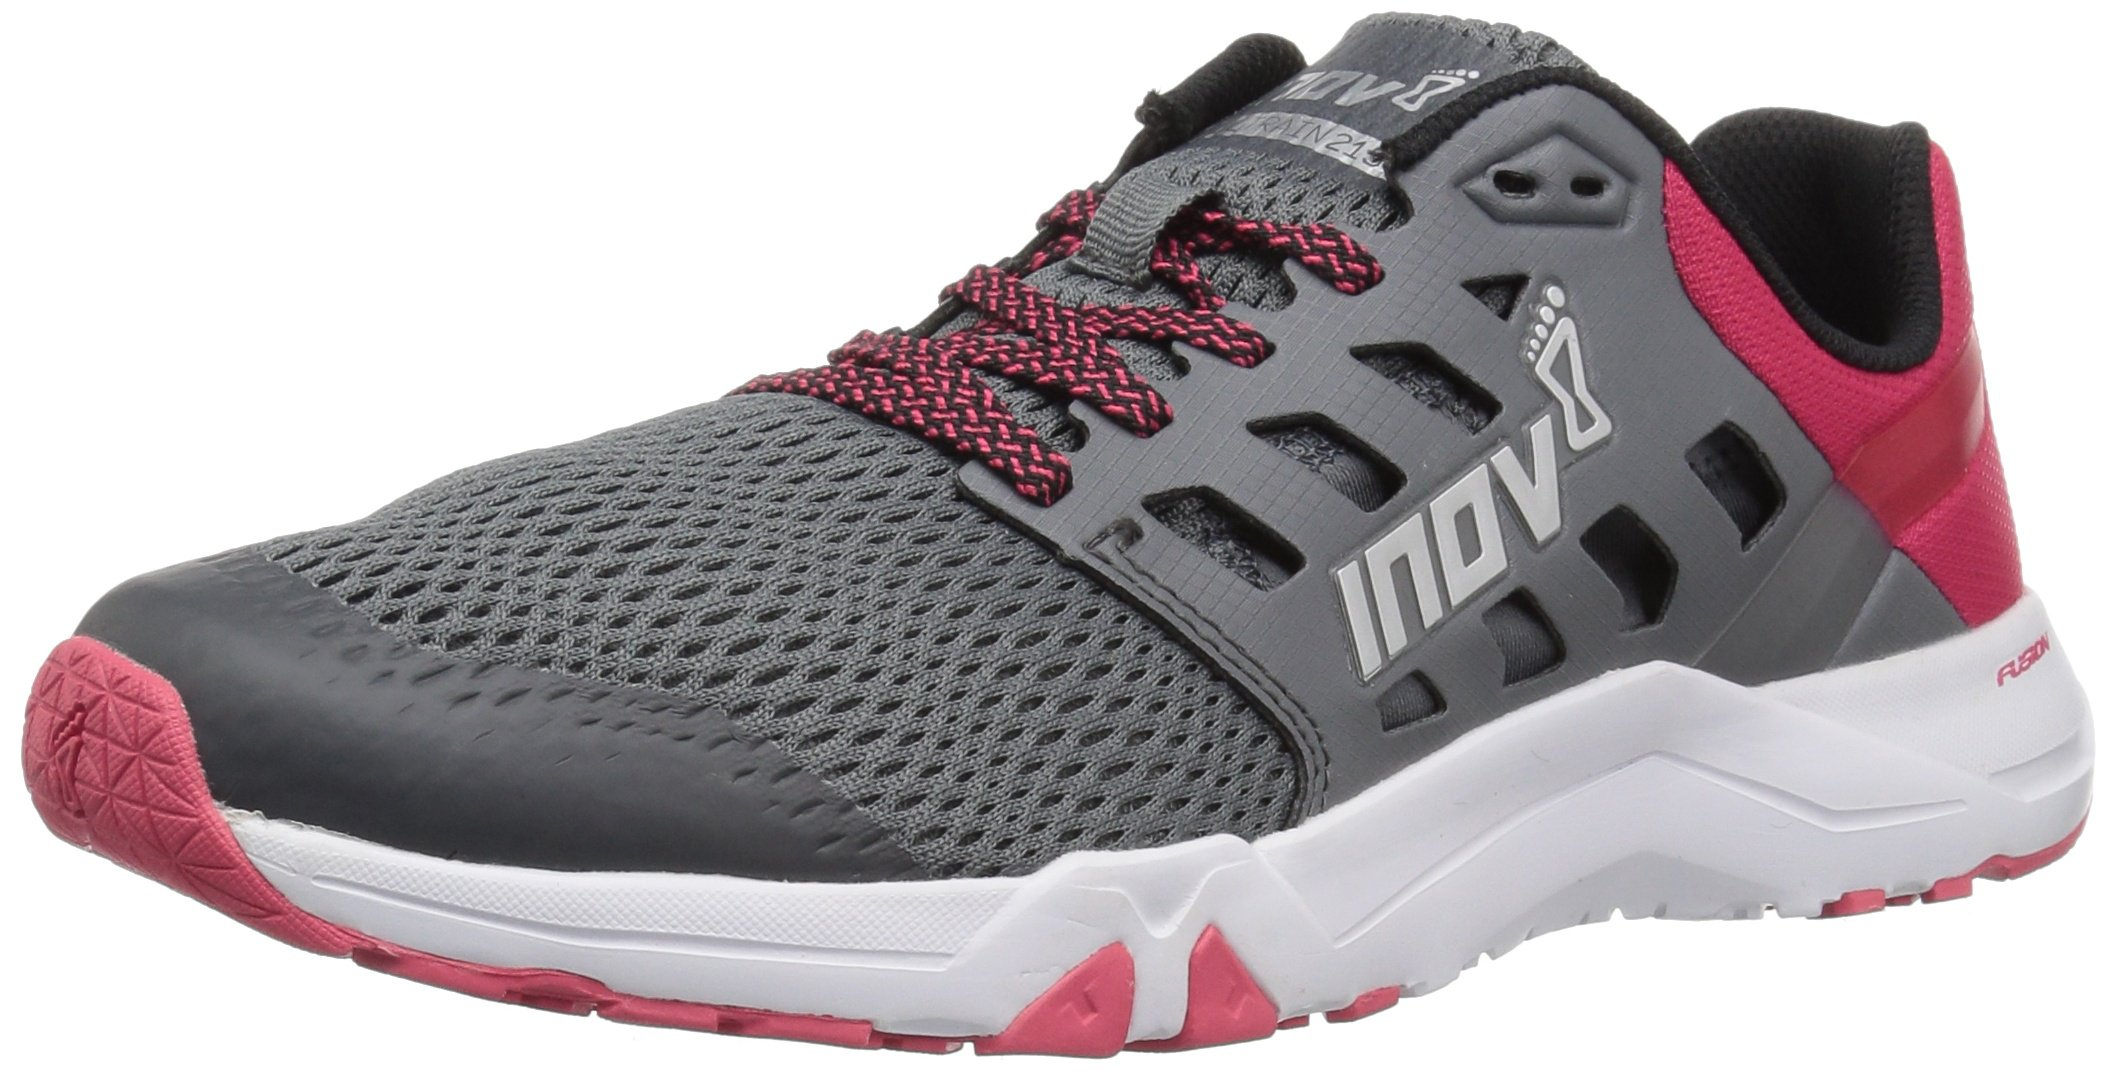 inov-8 Women's All Train 215 (W) Cross Trainer, Grey/Pink, 11 B US